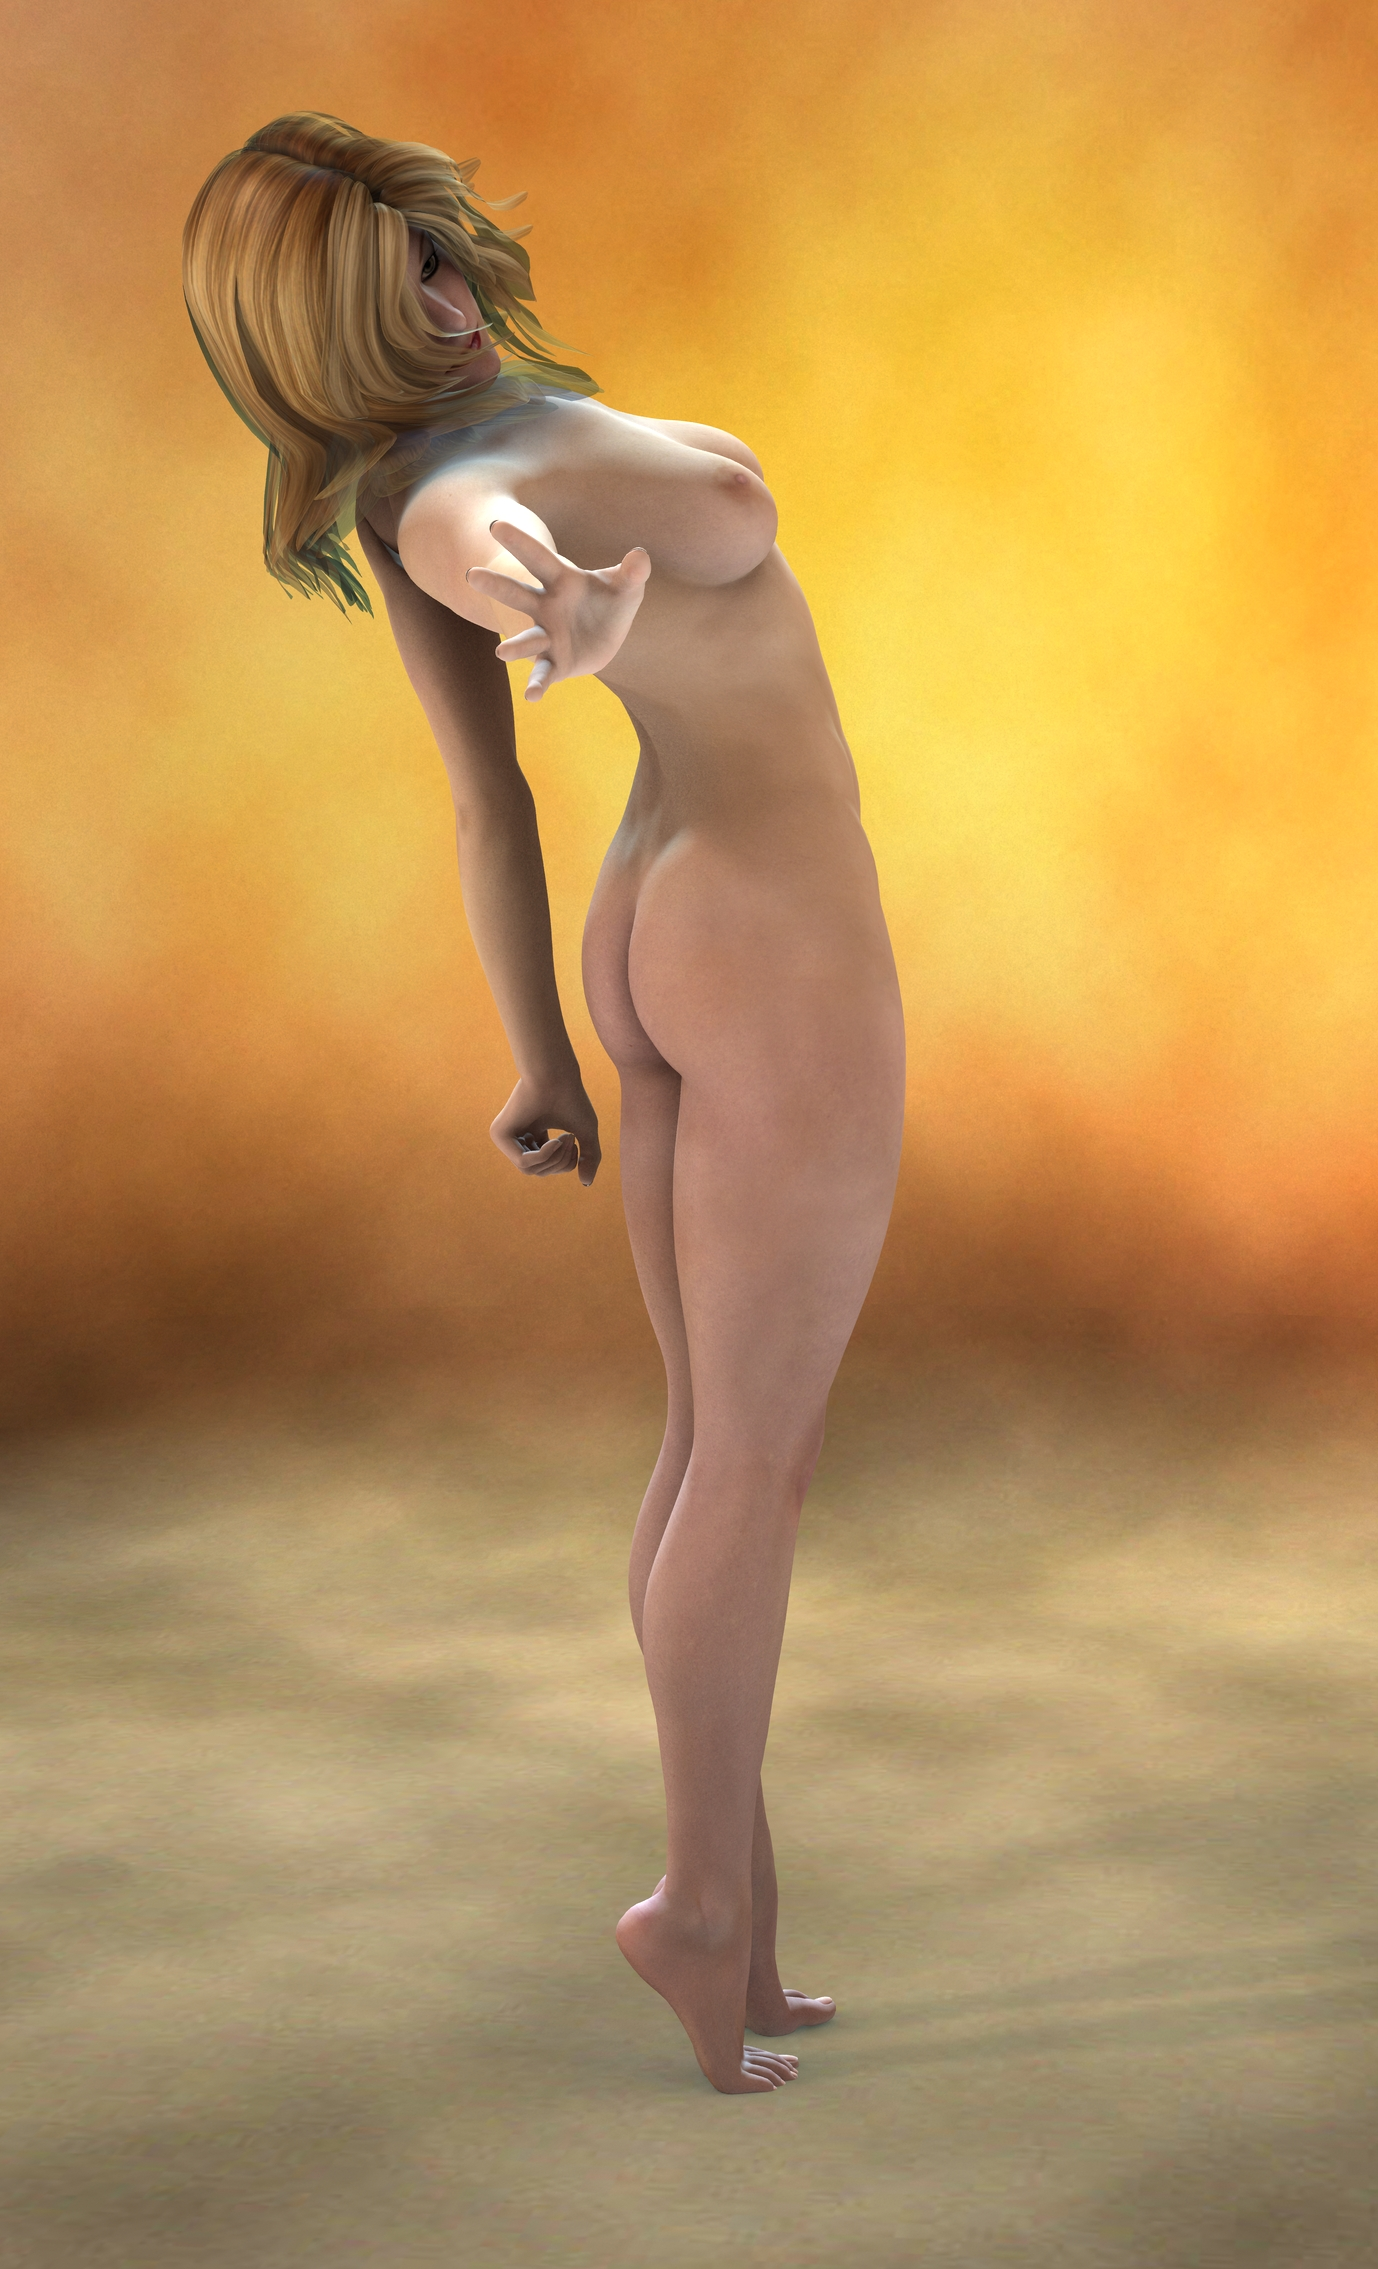 Daz3d girl nude adult photos